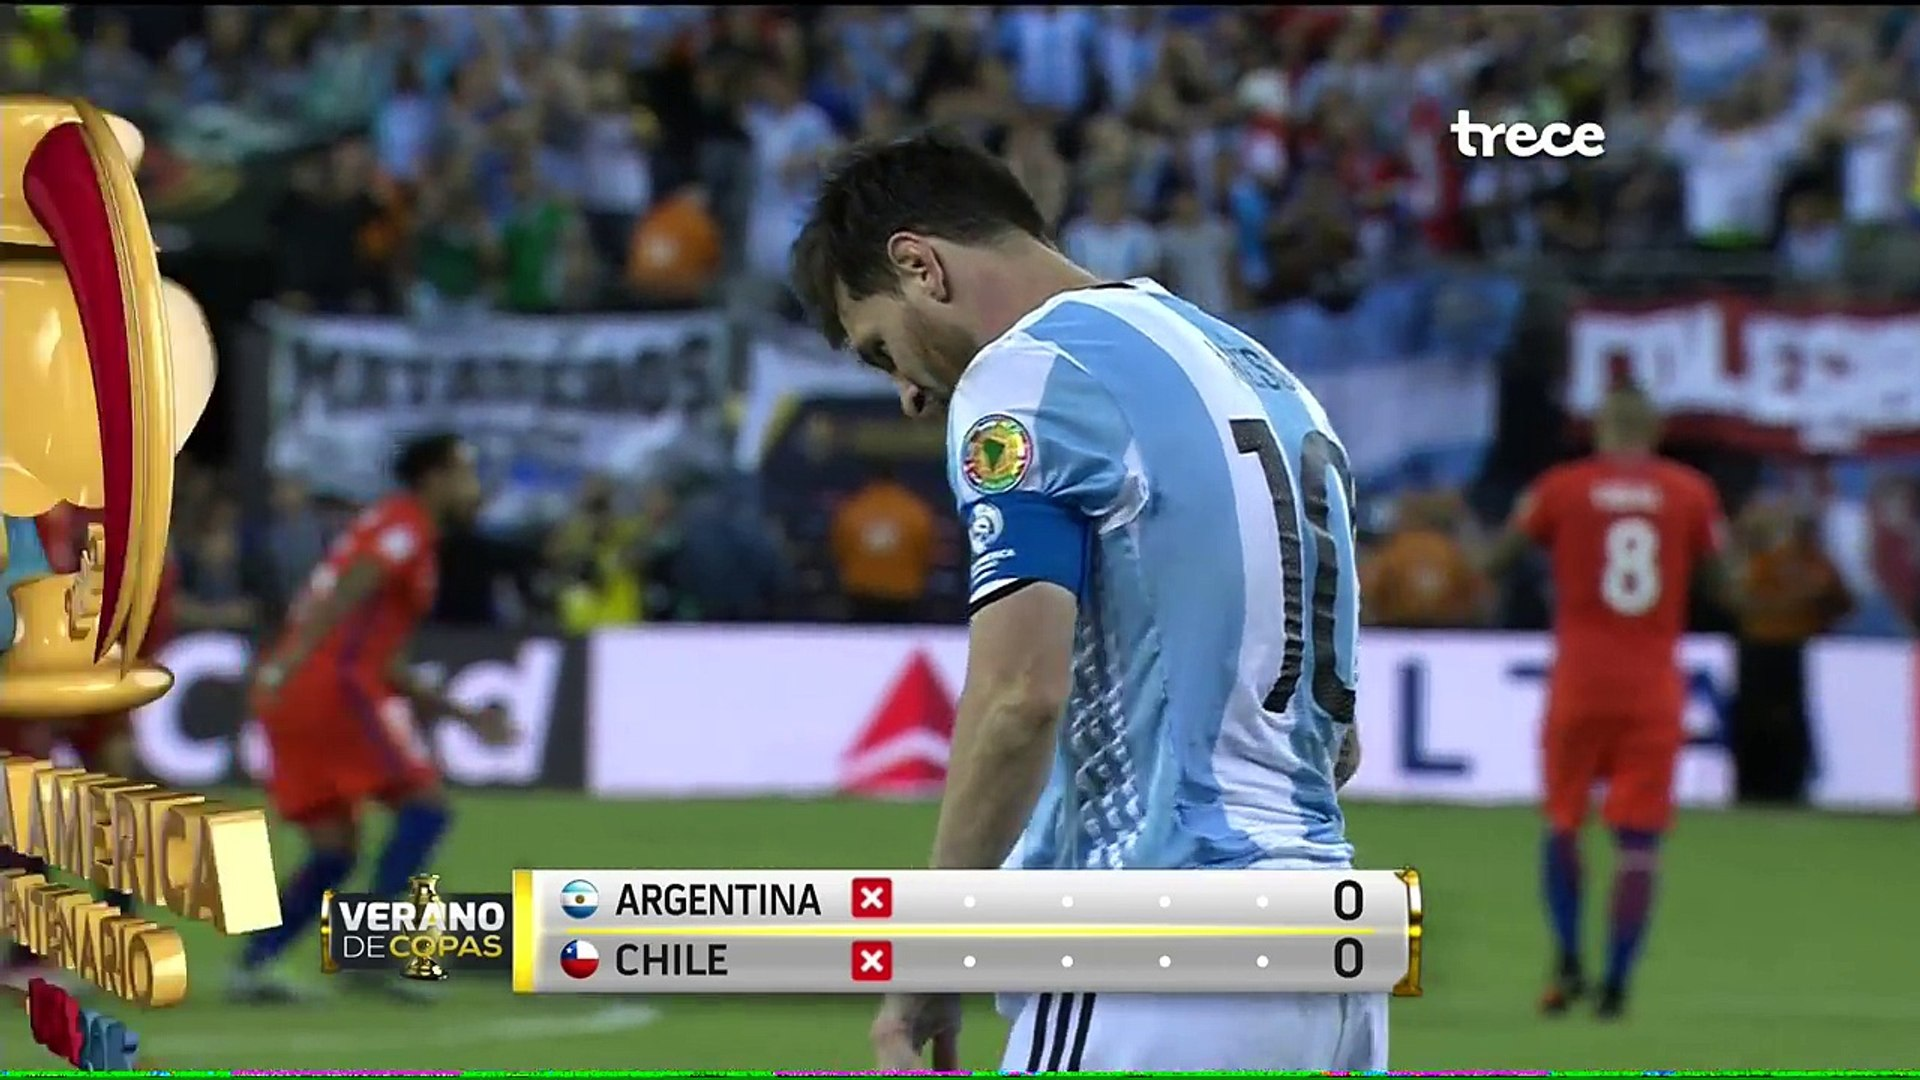 Argentina vs Chile 0-0 (2-4) Copa America 2016 TV AZTECA FULL HD - CHILE CAMPEON